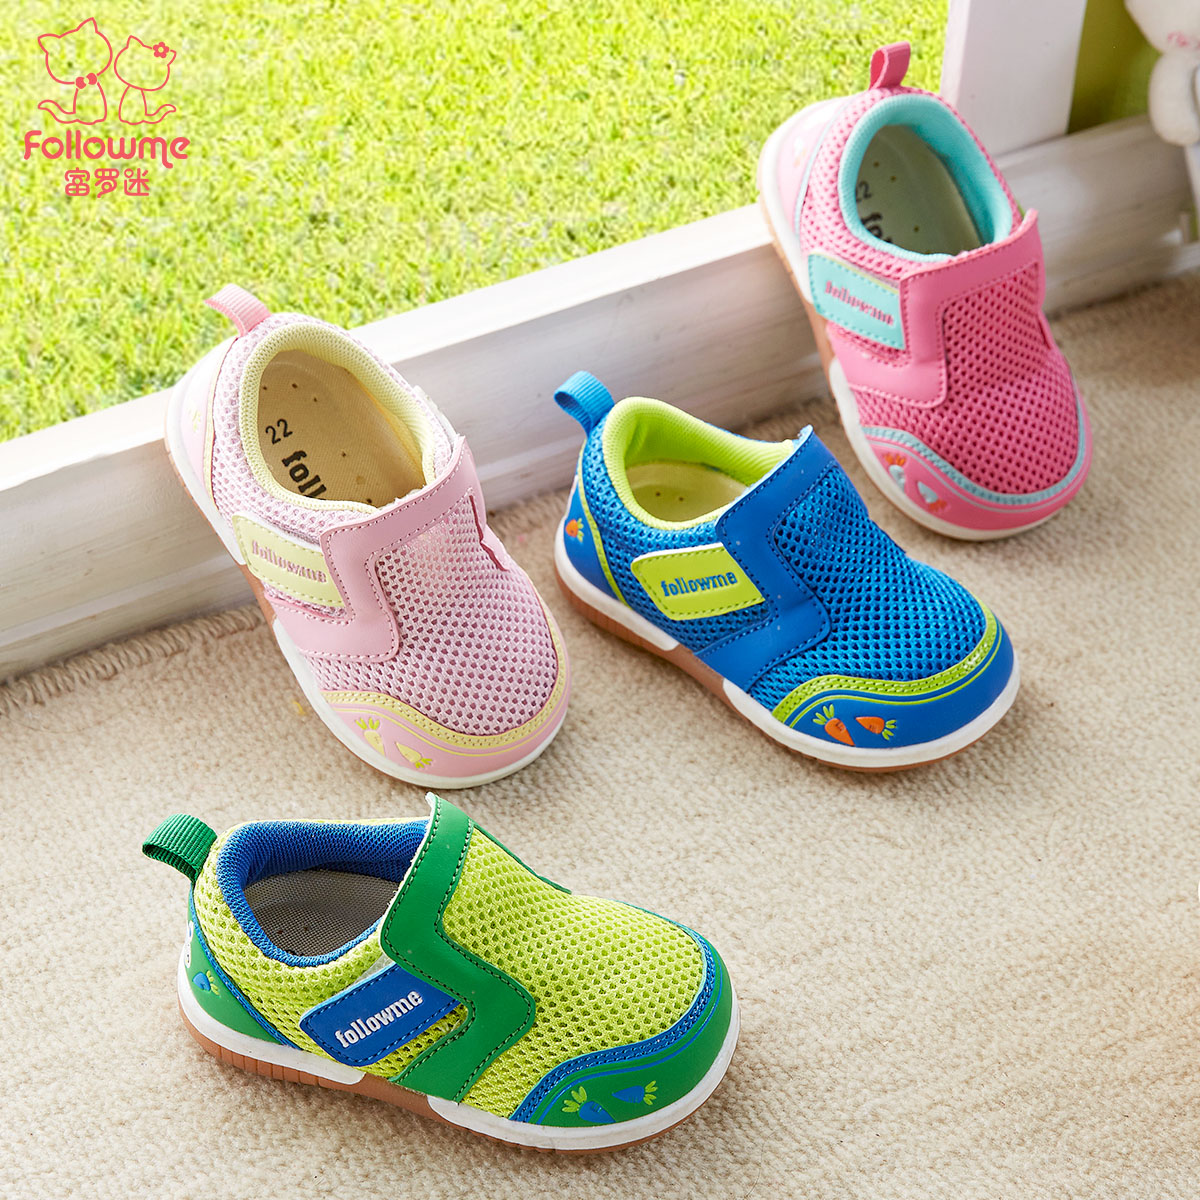 Lo fu fan of children's autumn baby toddler shoes function shoes new women's shoes autumn shoes baby shoes baby toddler years